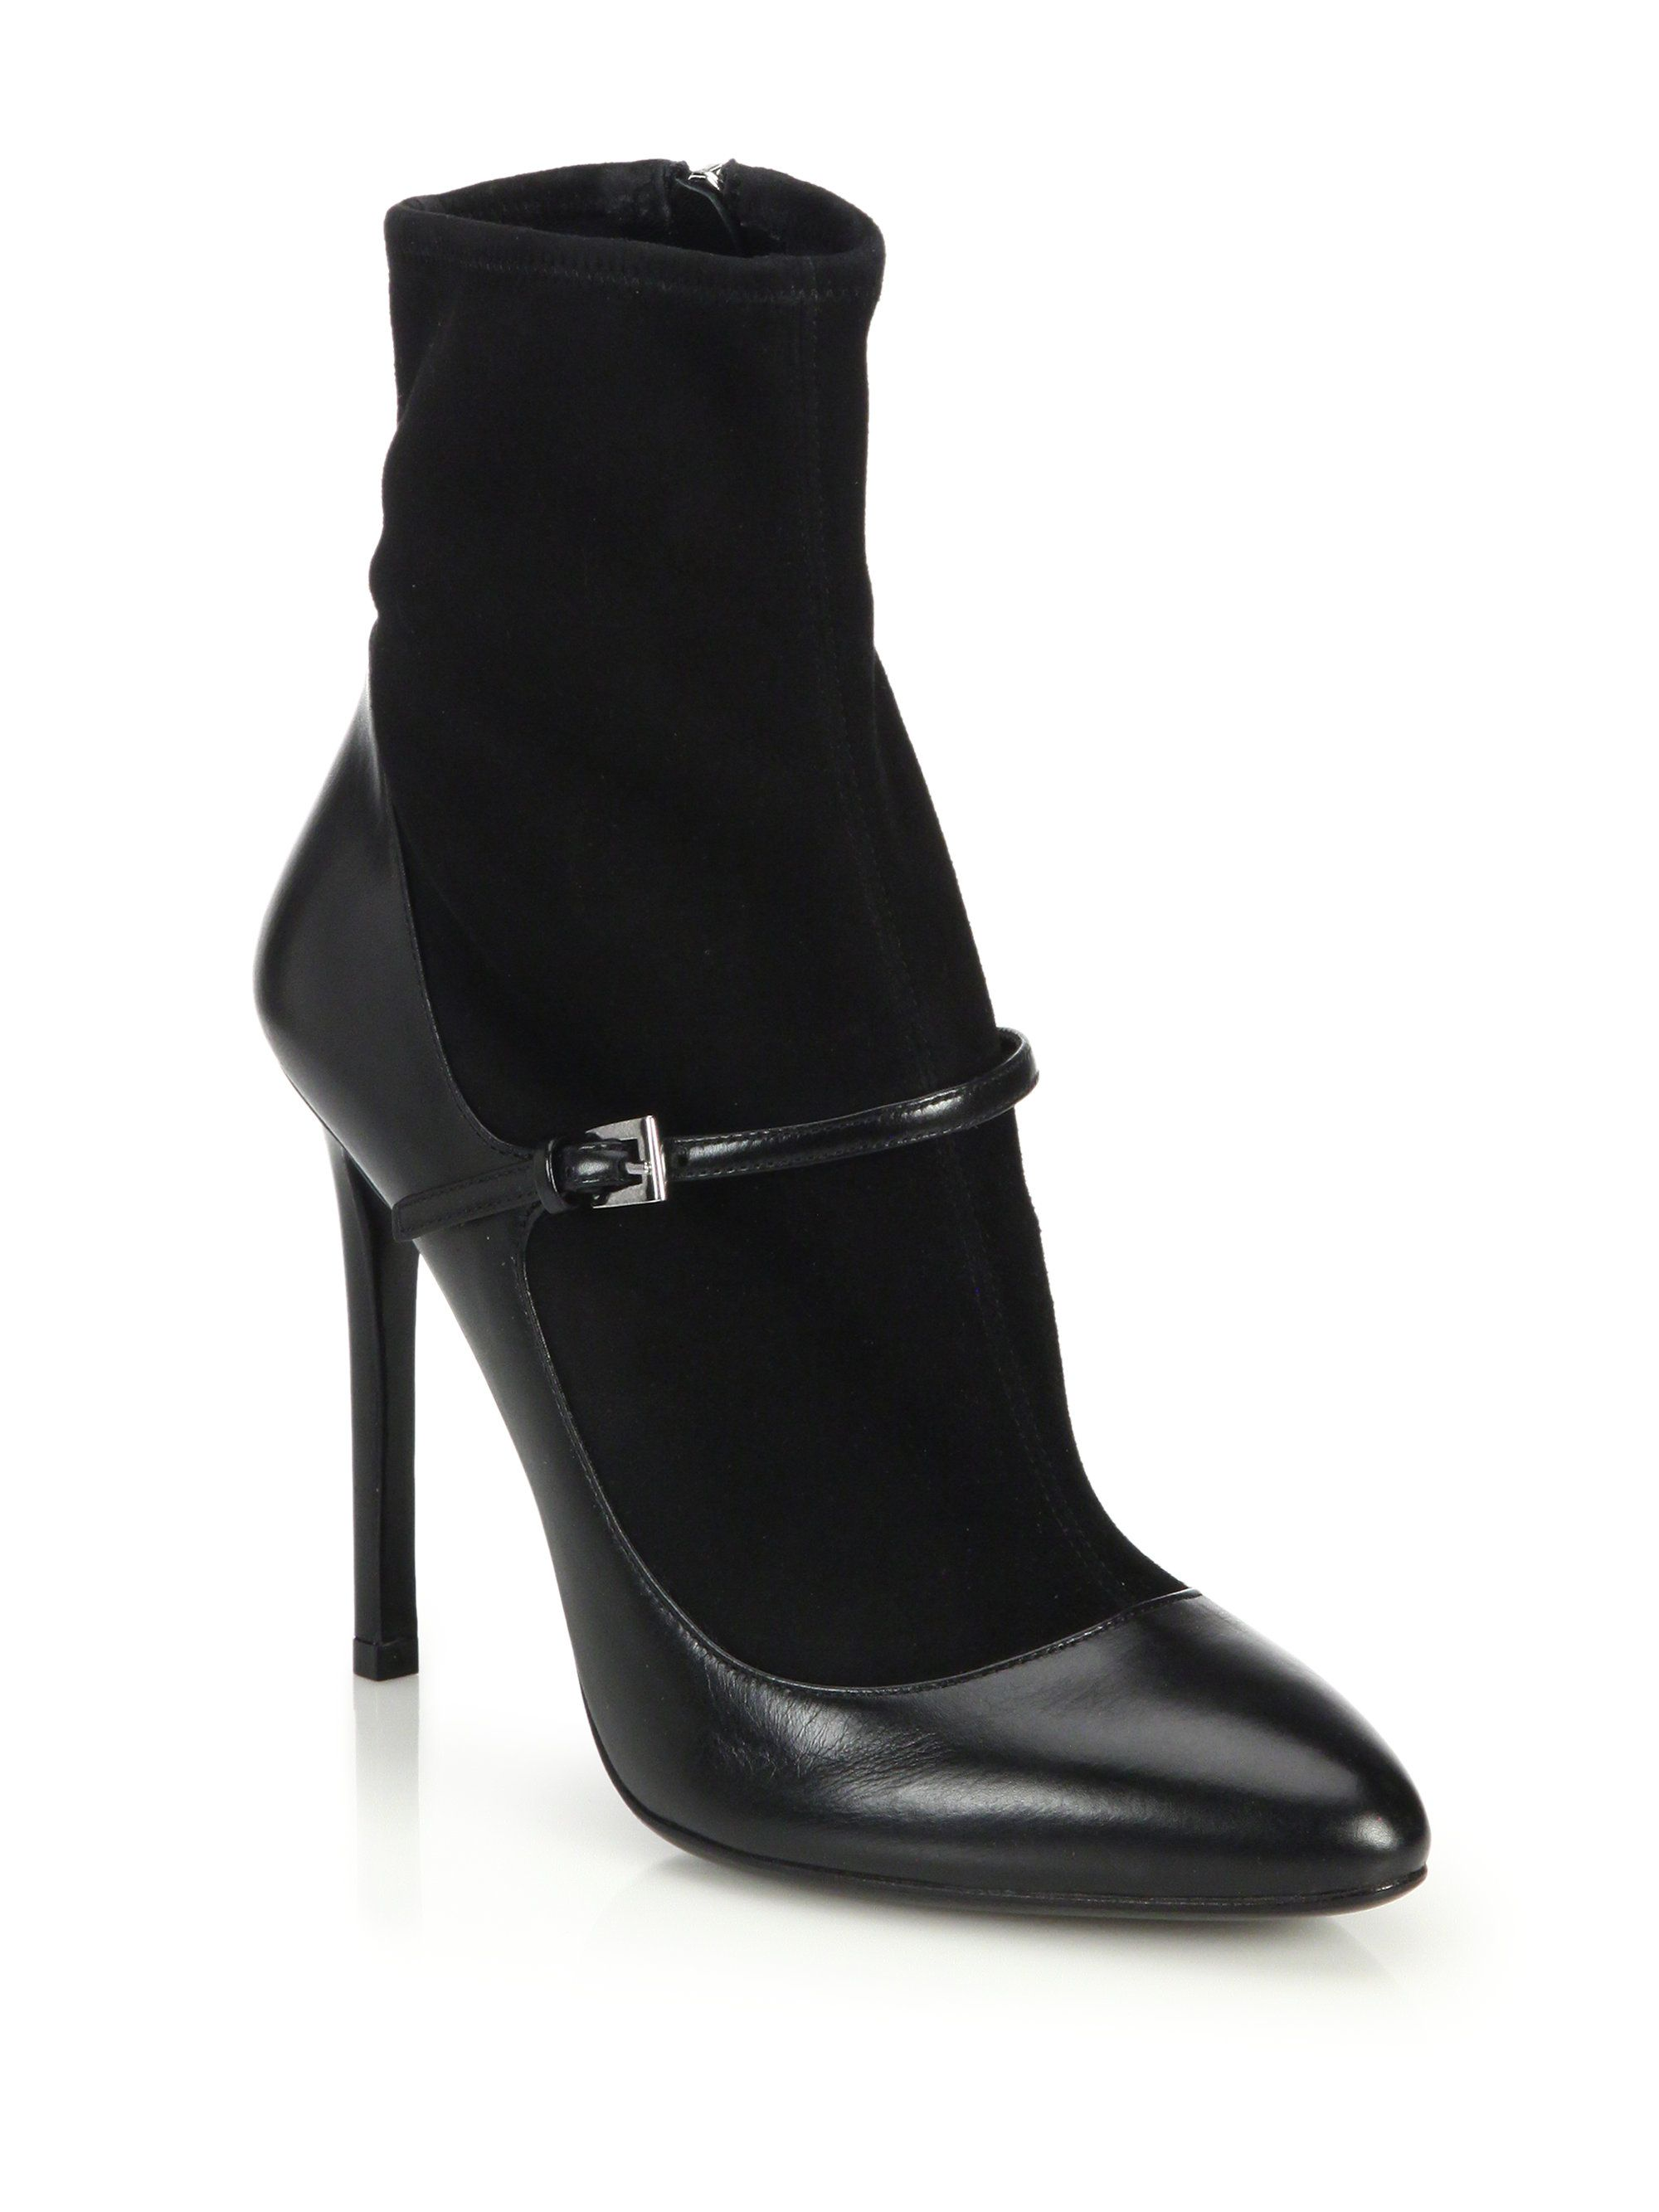 6bc71815dce Women's Black Suede Sock & Leather Mary Jane Booties | Shoes ...